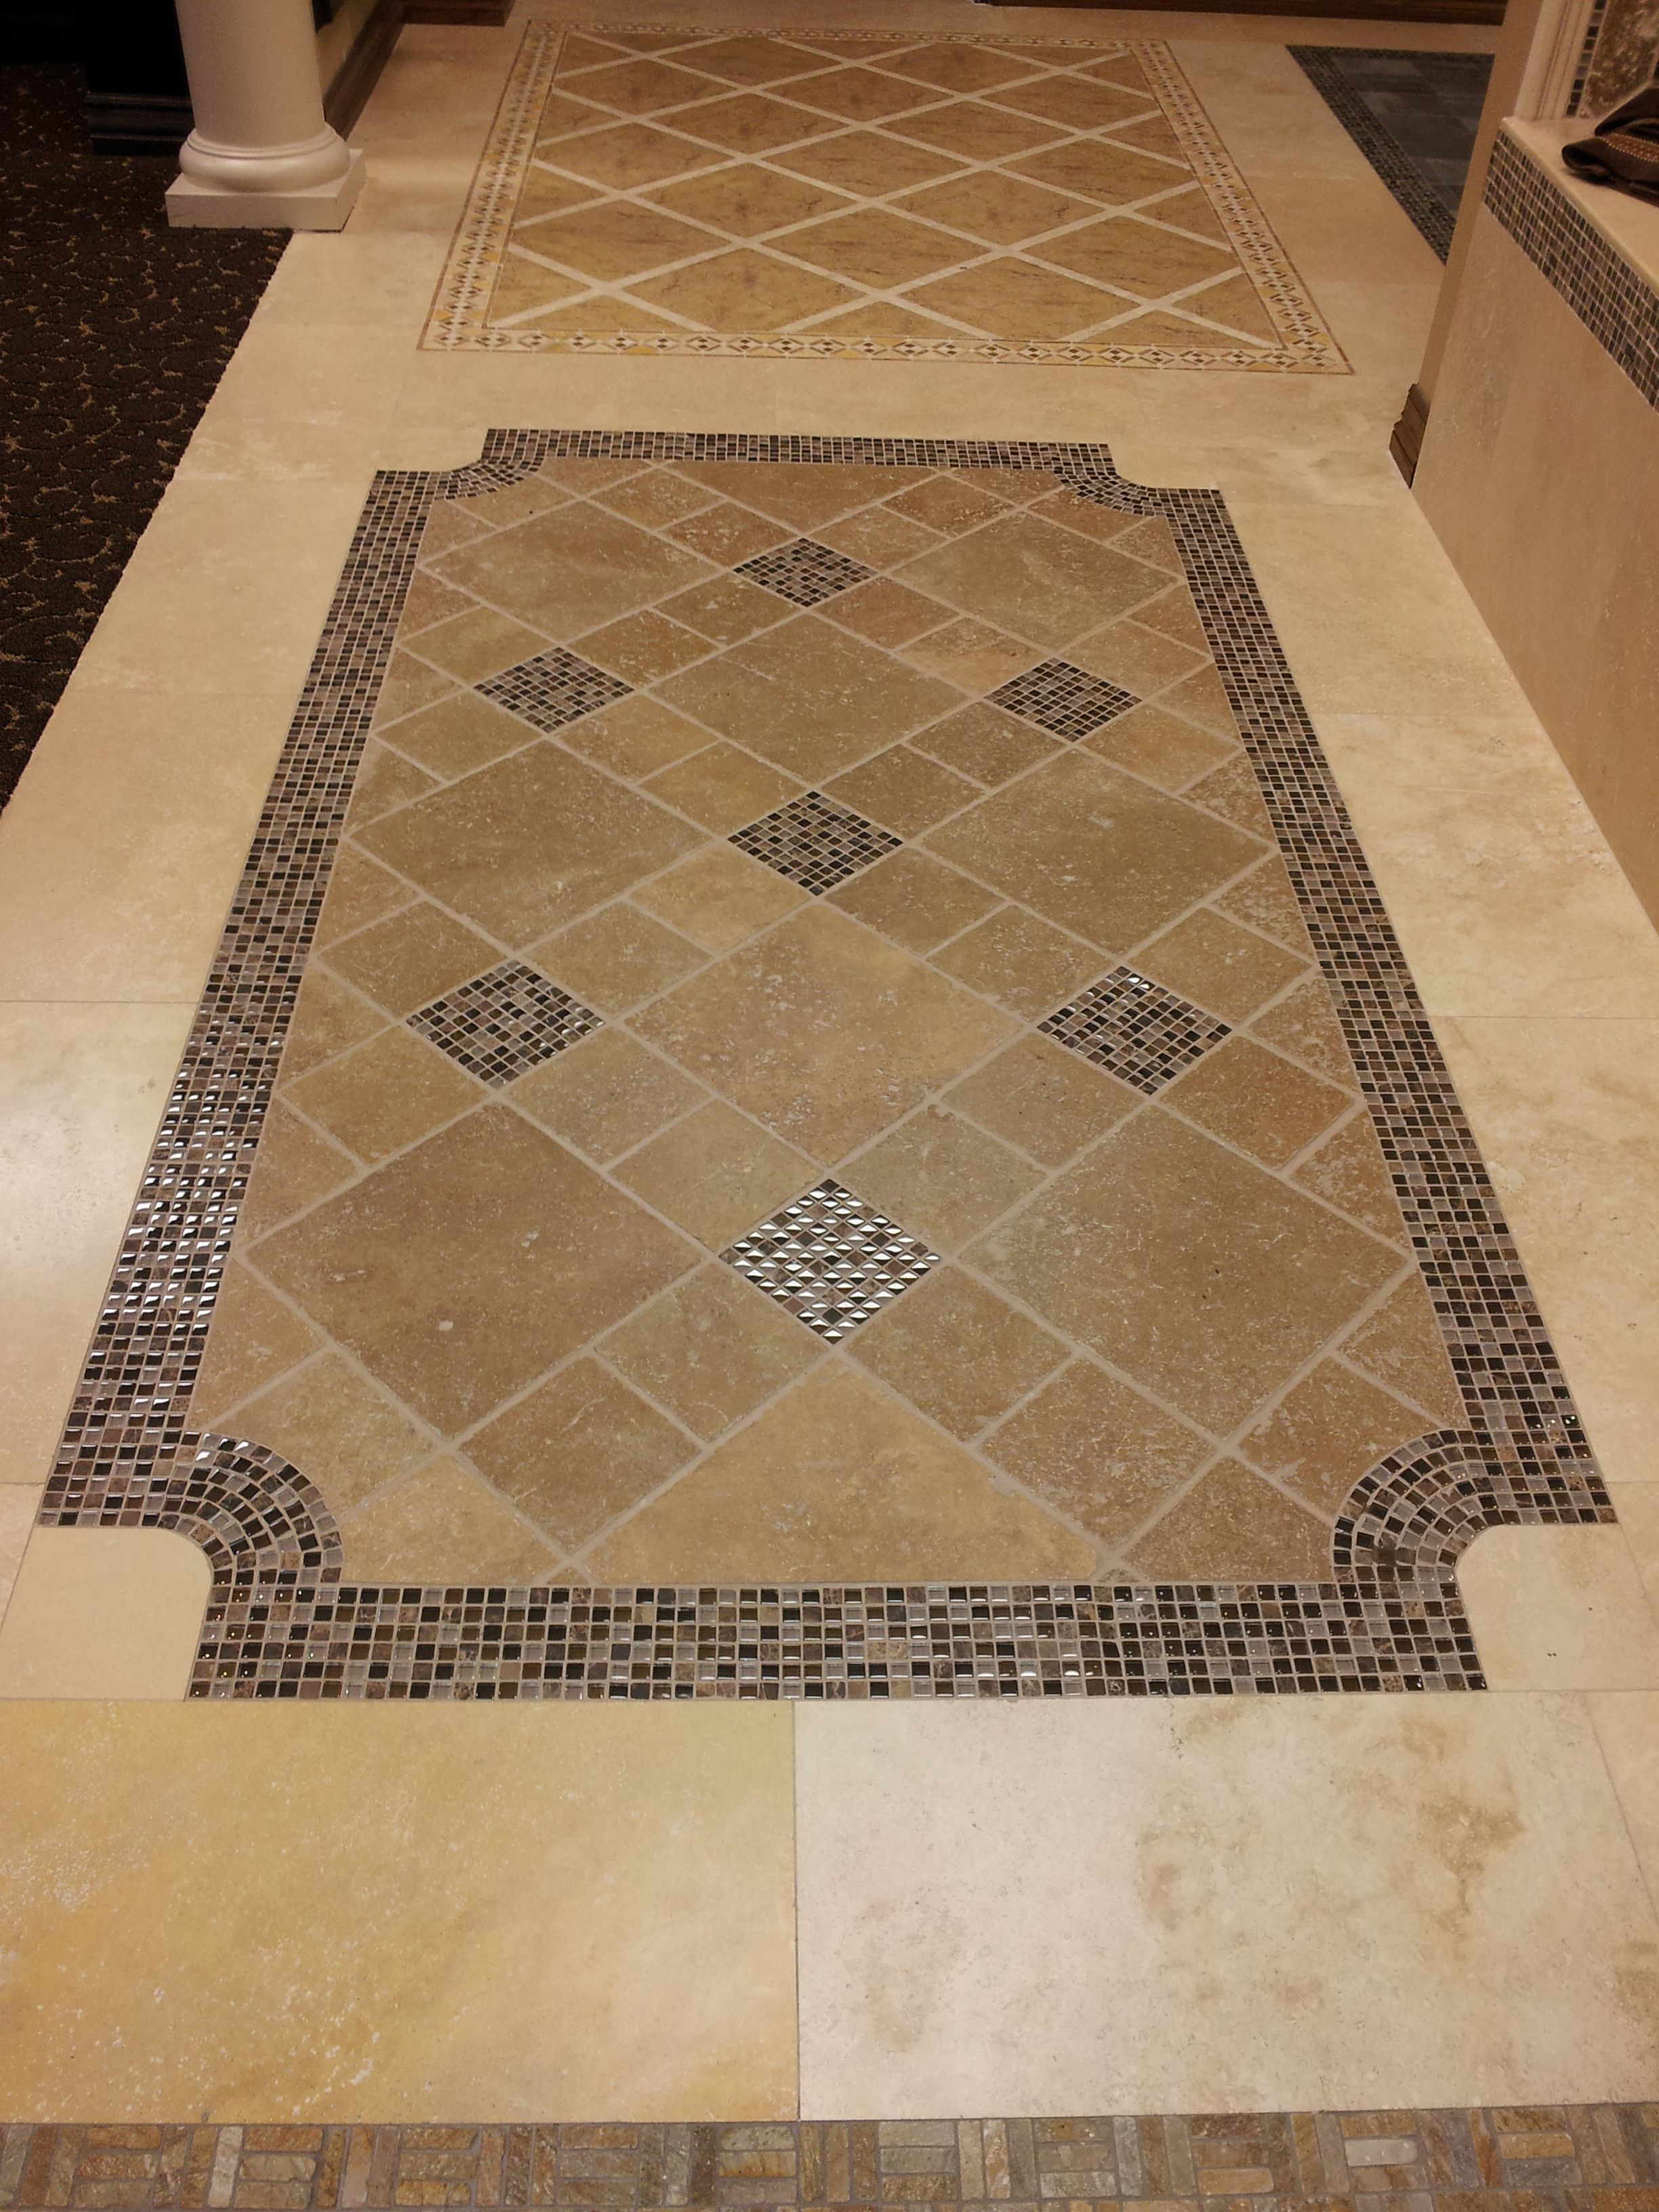 tile floor design idea - Tile Floor Design Ideas